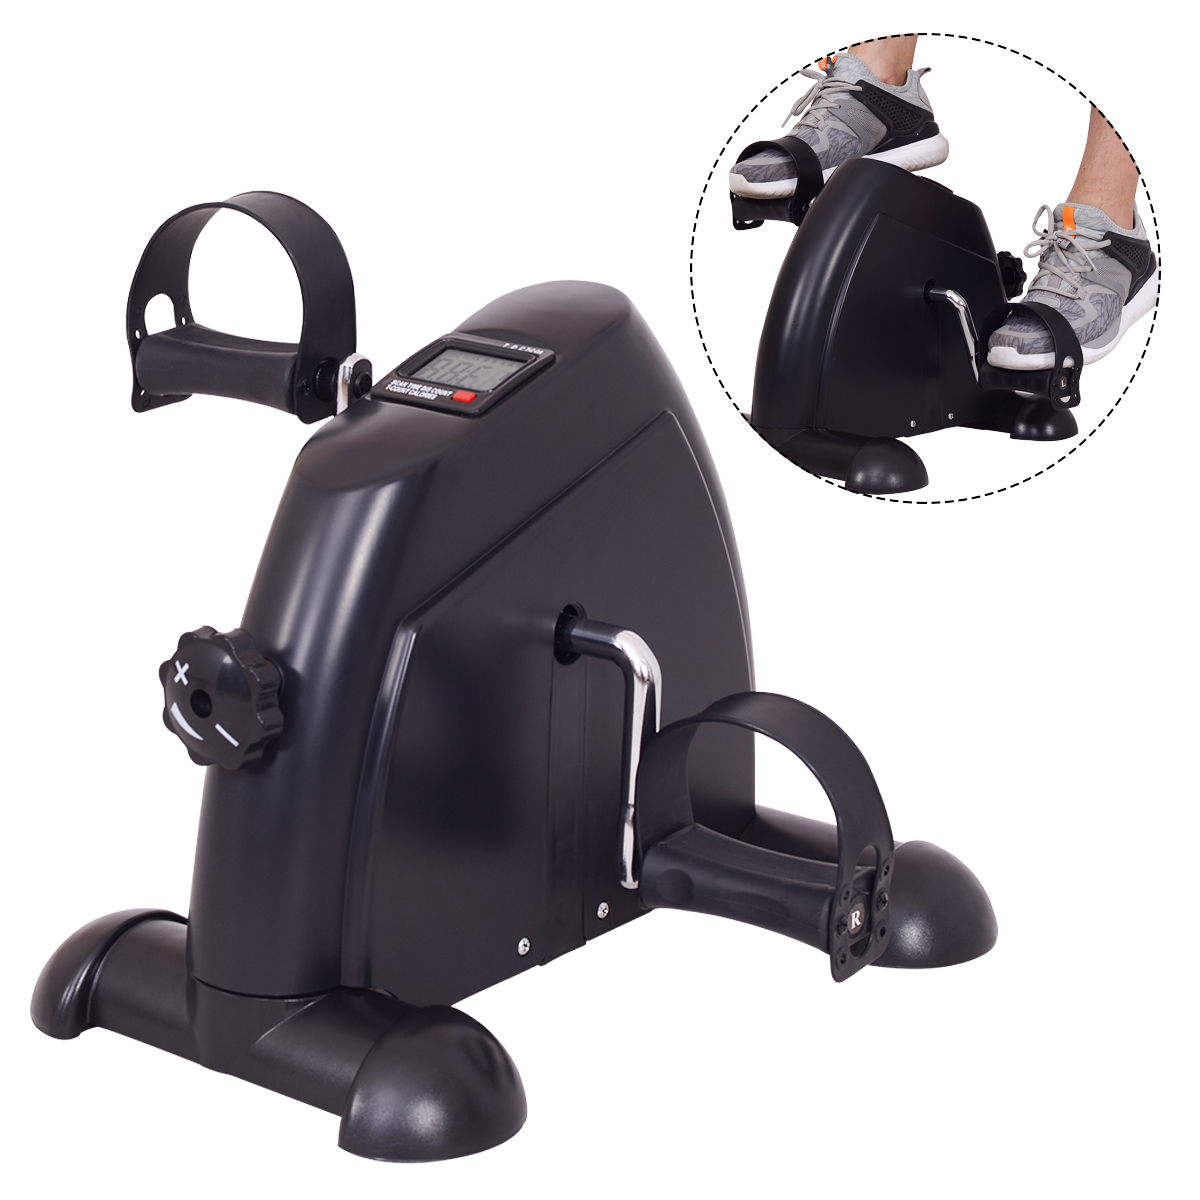 Costway LCD Display Pedal Mini Cycling Fitness Leg Exercise Bike Indoor Stationary